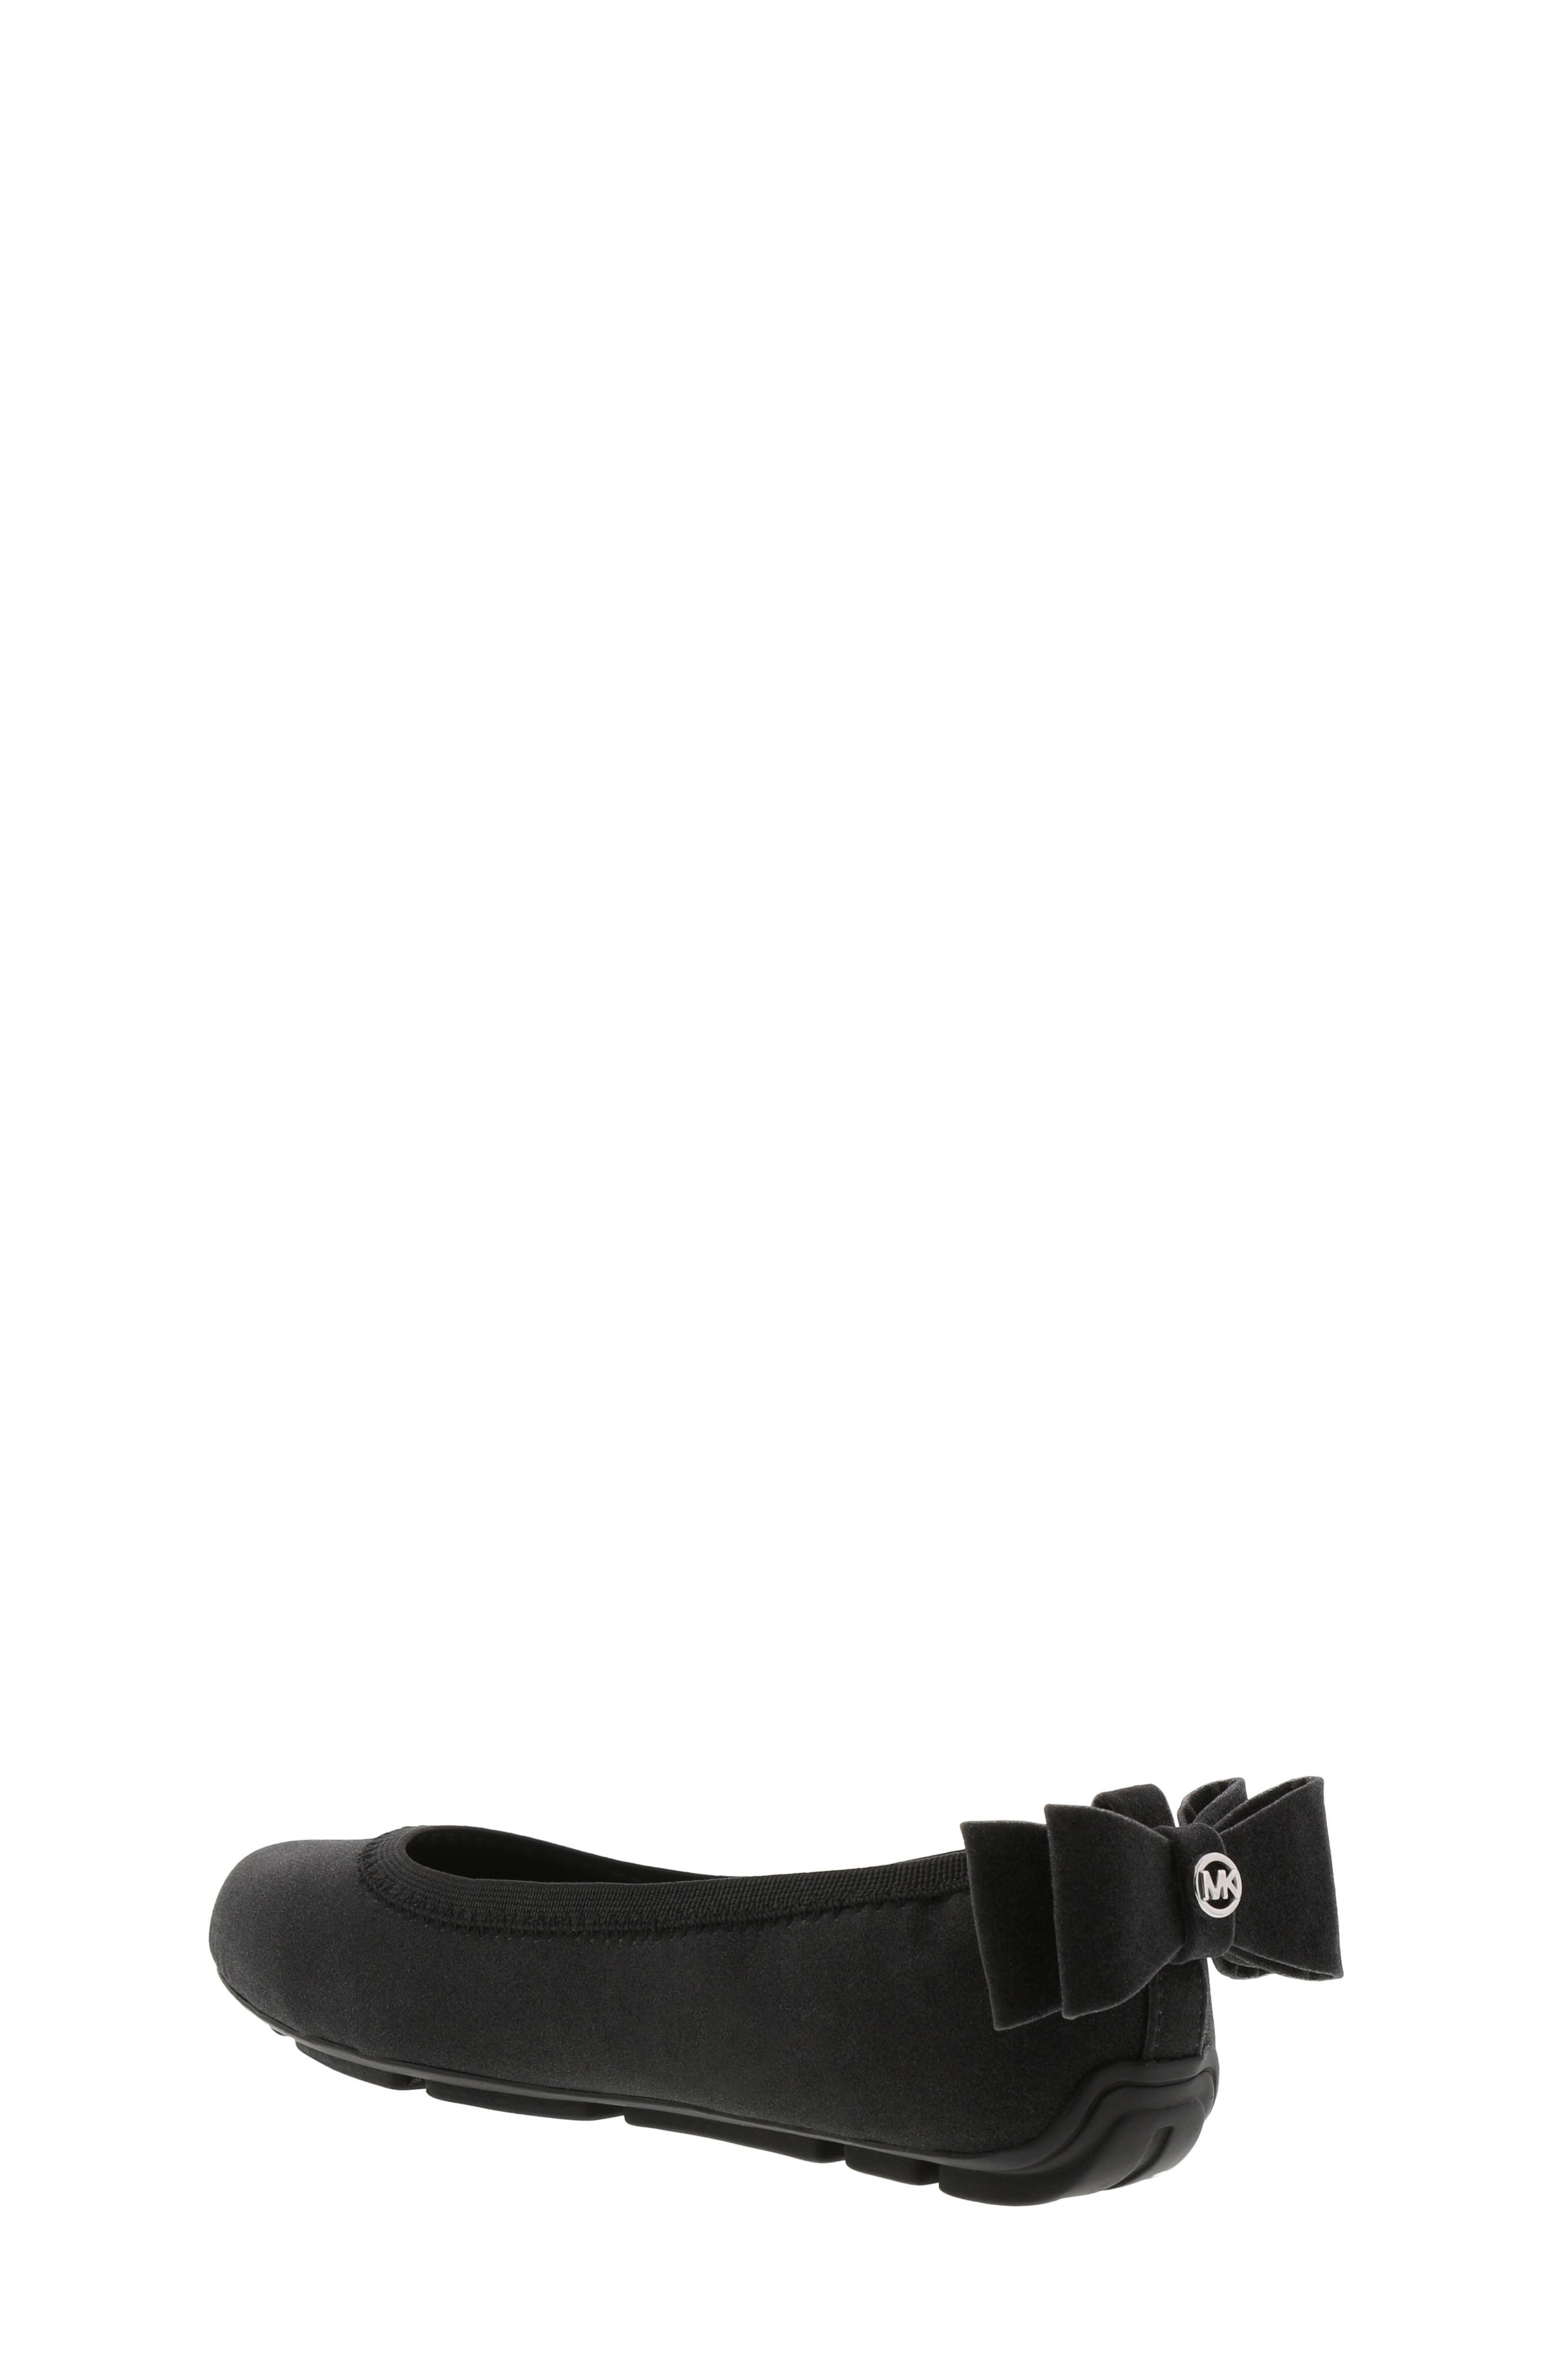 MICHAEL MICHAEL KORS,                             Rover Ellie Flat,                             Alternate thumbnail 2, color,                             BLACK